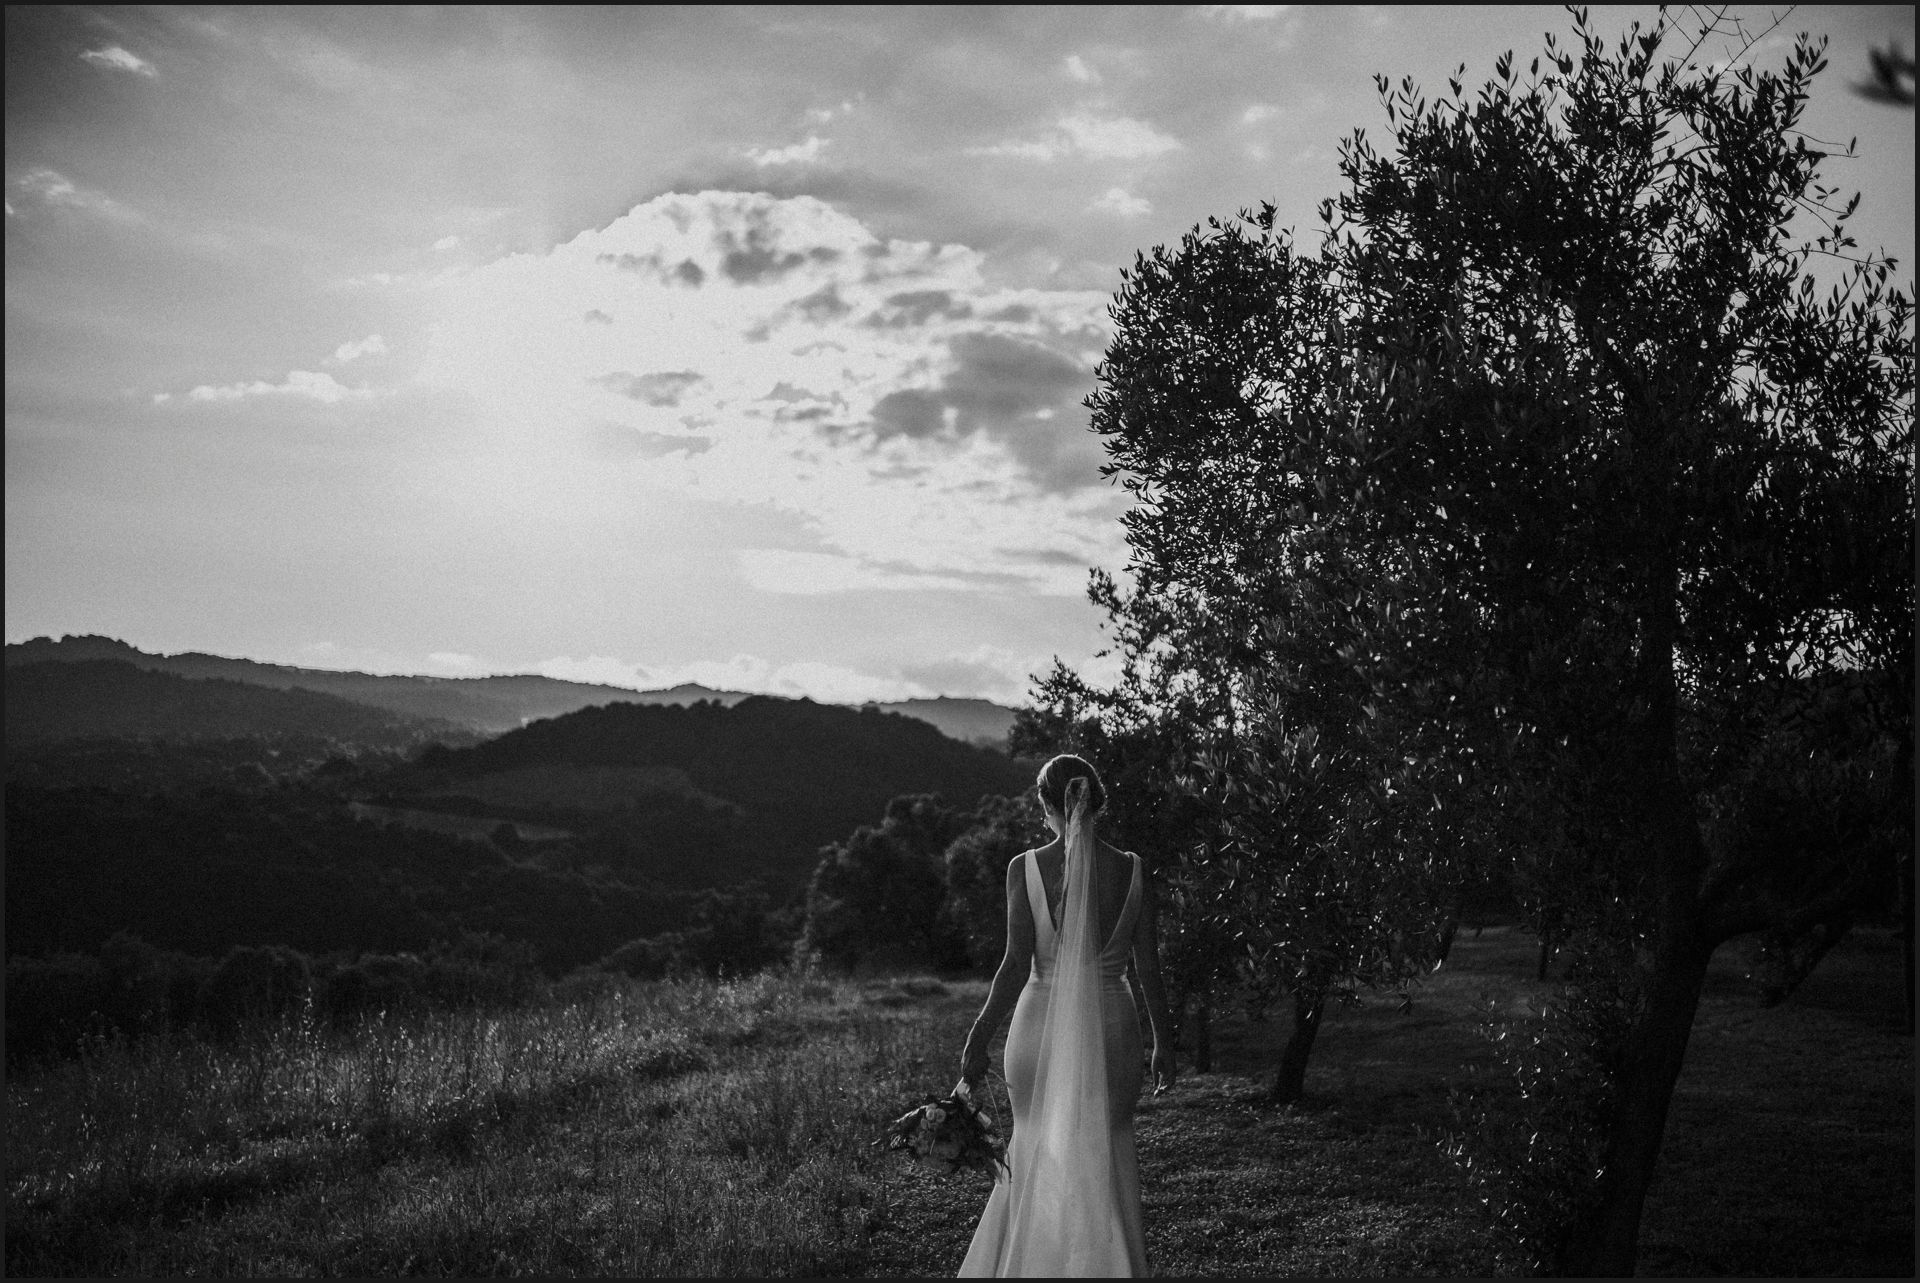 tenuta di canonica, umbria, wedding, bride, groom, love, black and white, elegance